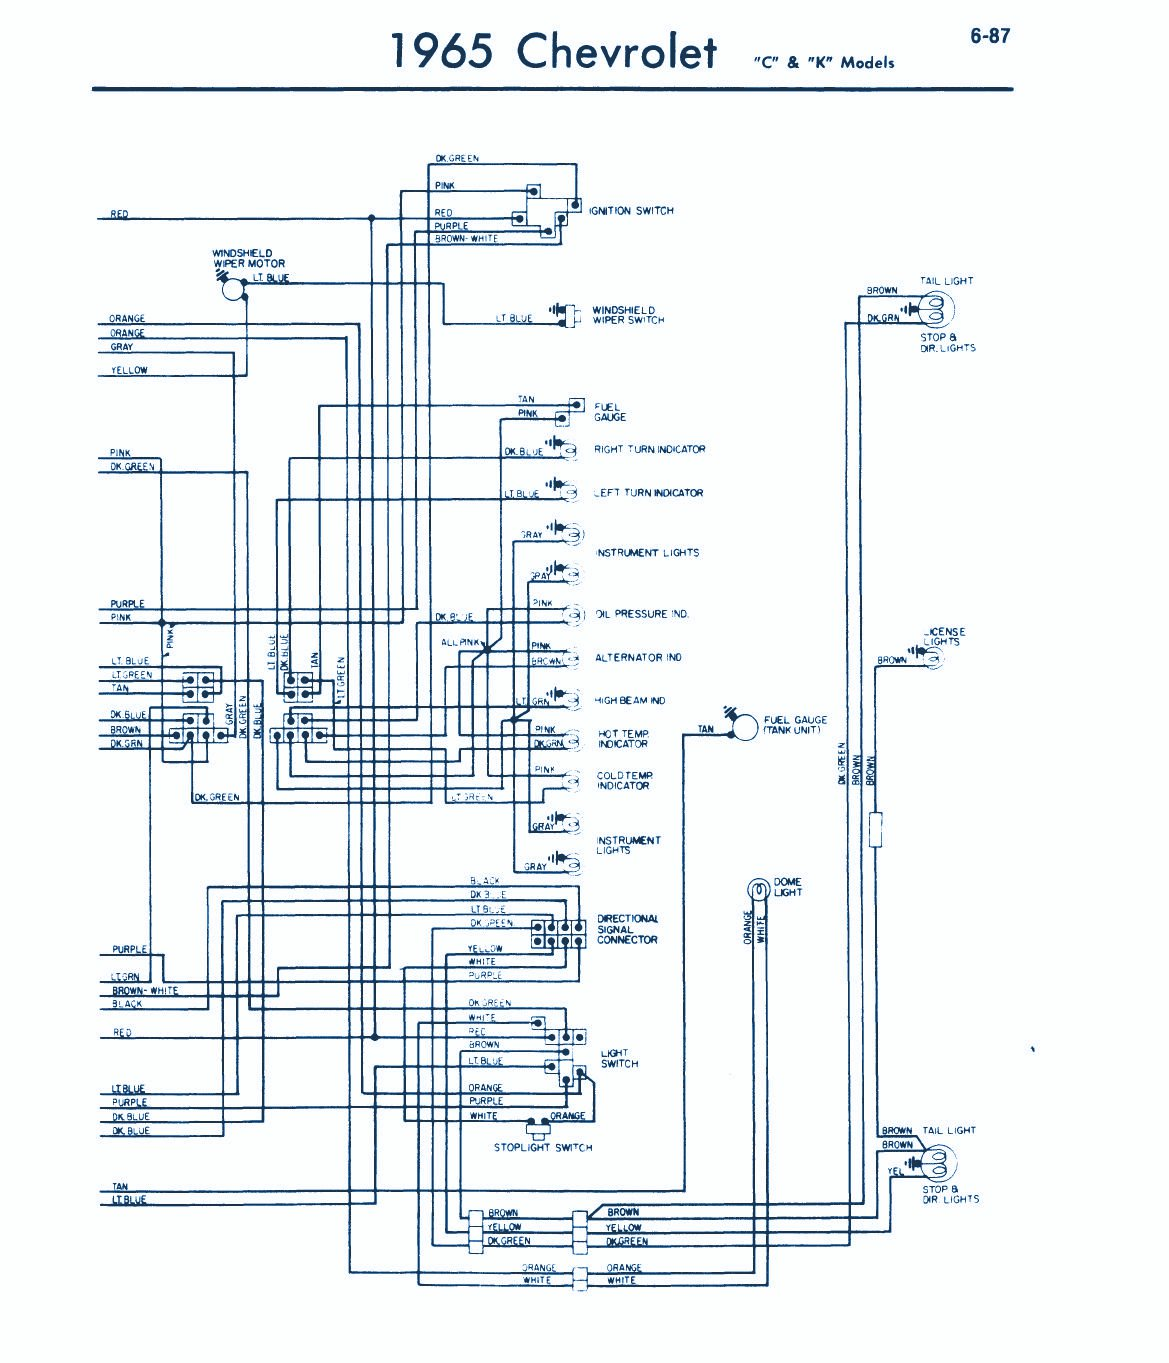 1967 chevy impala wiring harness diagram 62 chevy impala wiring harness 1965 chevrolet wiring diagram | auto wiring diagrams